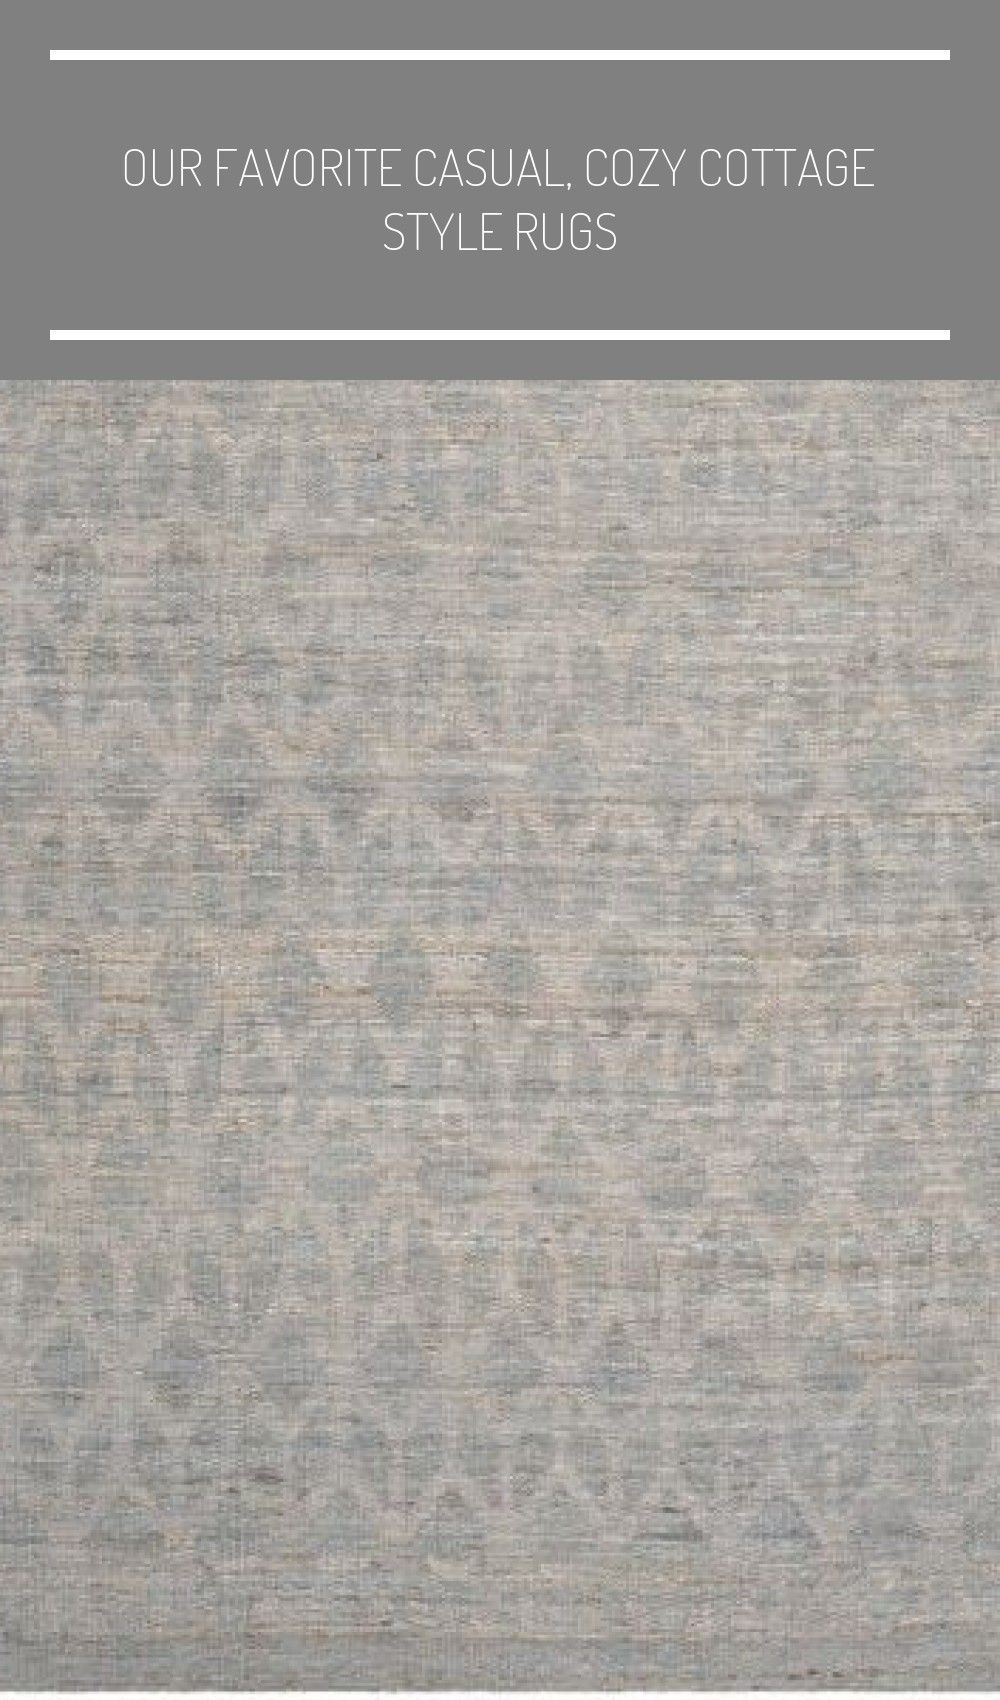 My Favorite 8x10 Farmhouse Rugs Under 400 Perfect Modern Farmhouse Rugs You Can Layer A Nive Jute Sisal Rug In 2020 Layered Rugs Rugs On Carpet Natural Fiber Rugs